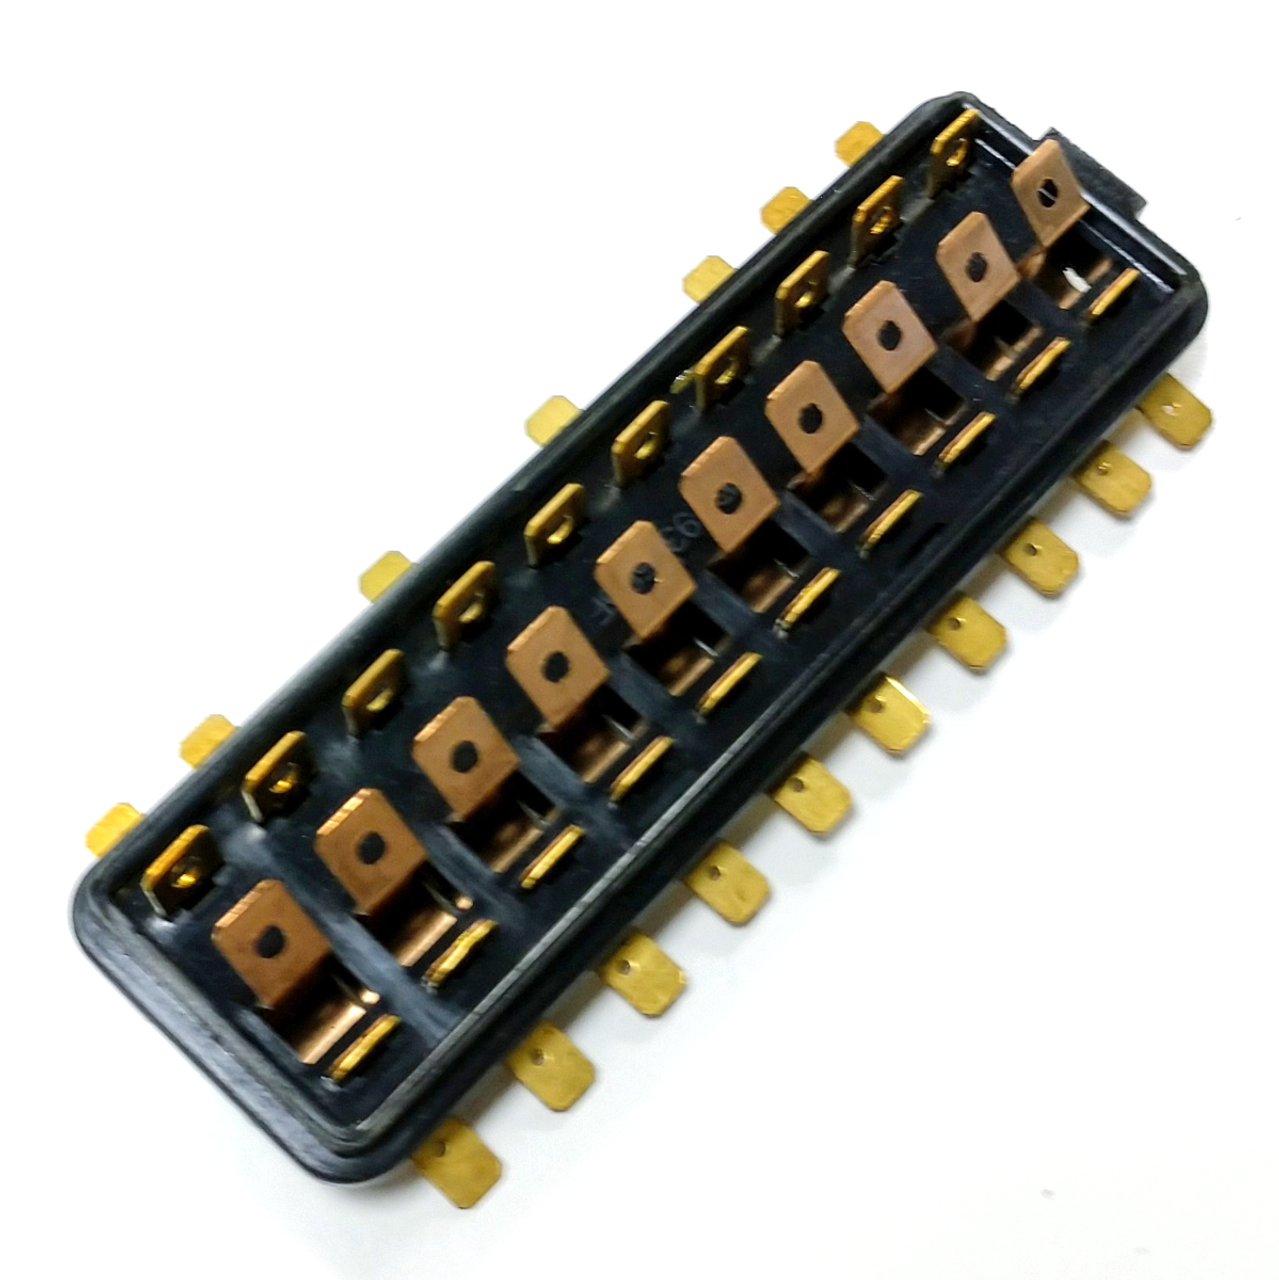 10 Fuse Box, Compatible With Volkswagen Type-1 67-71, Ghia 67-71, Thing 73-74